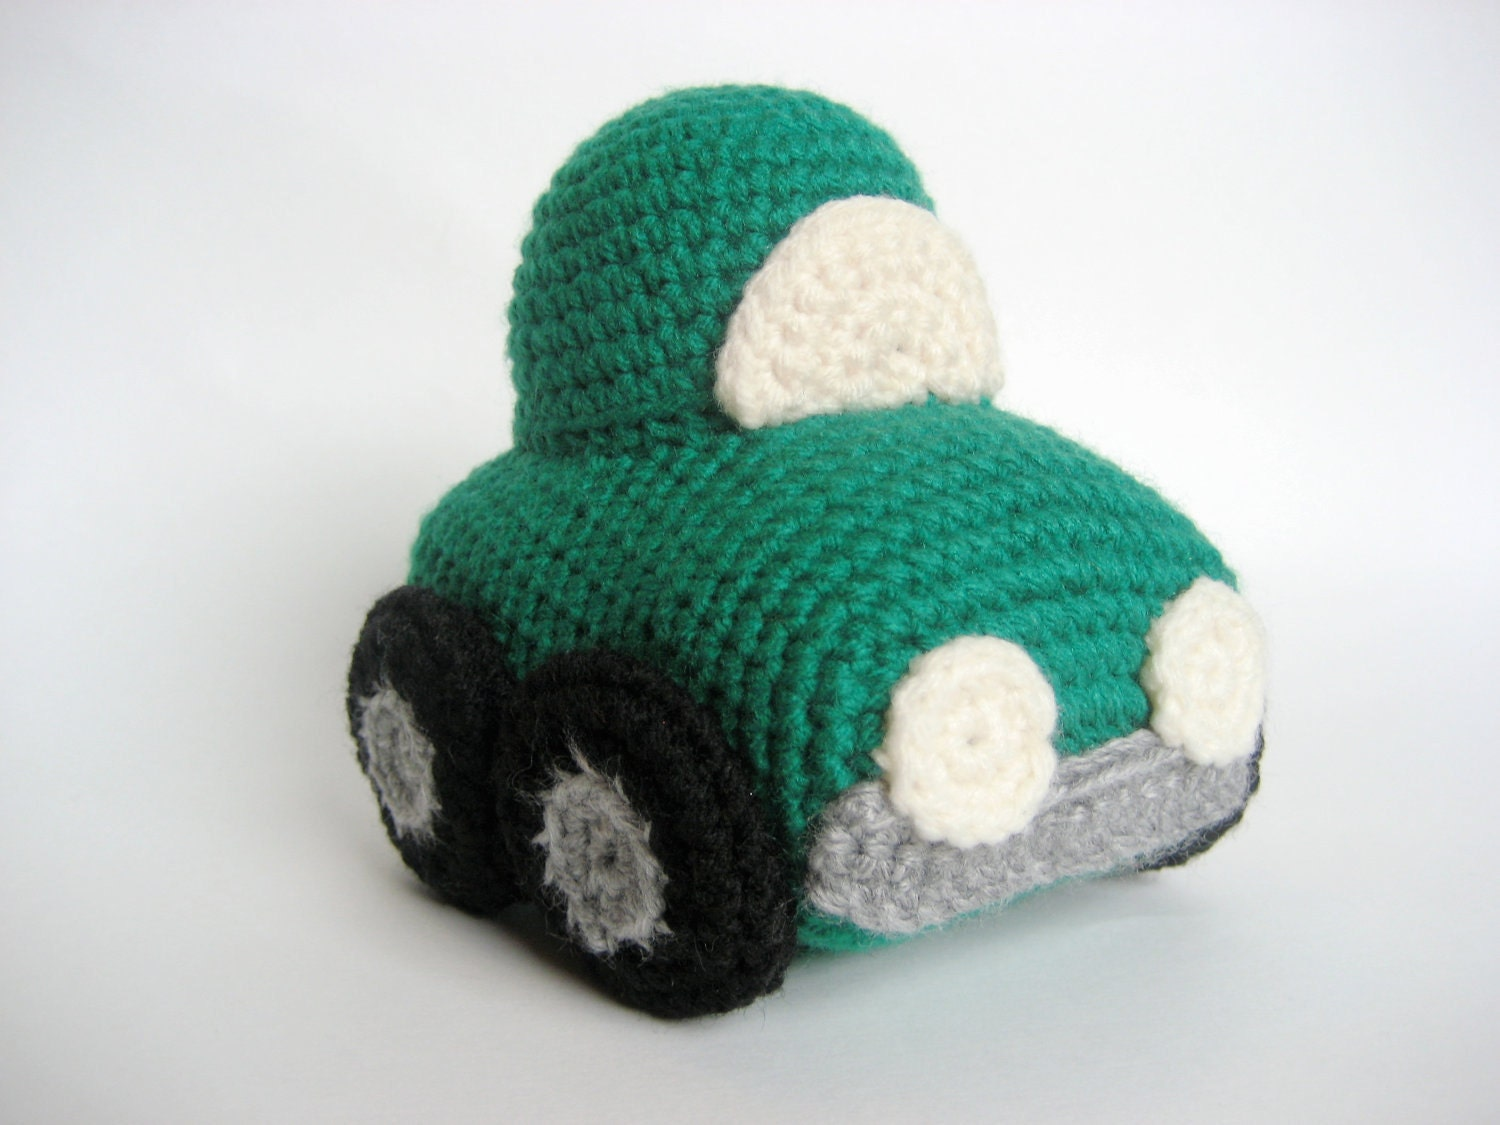 Crochet Car Toy Pattern by MsPremiseConclusion on Etsy